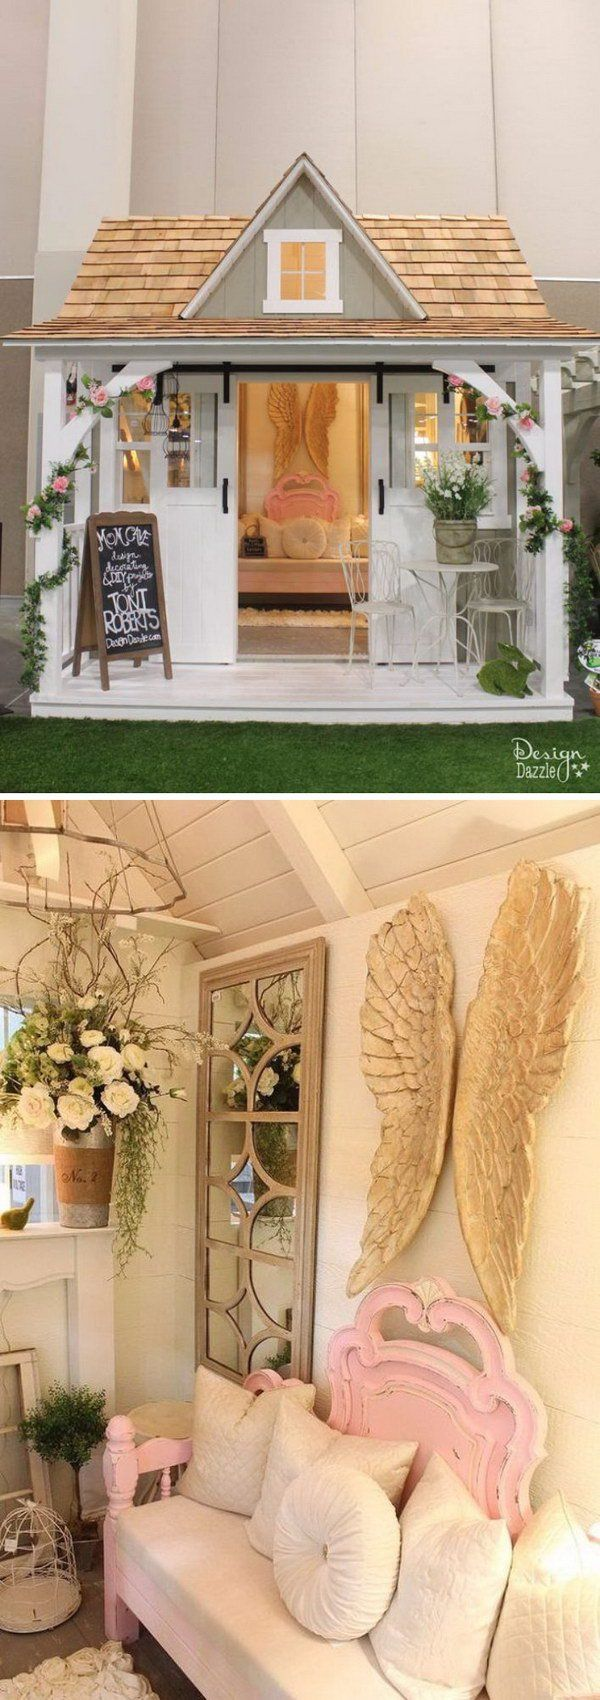 Shabby chic she shed shop makeover pinterest - Gartenhaus shabby chic ...